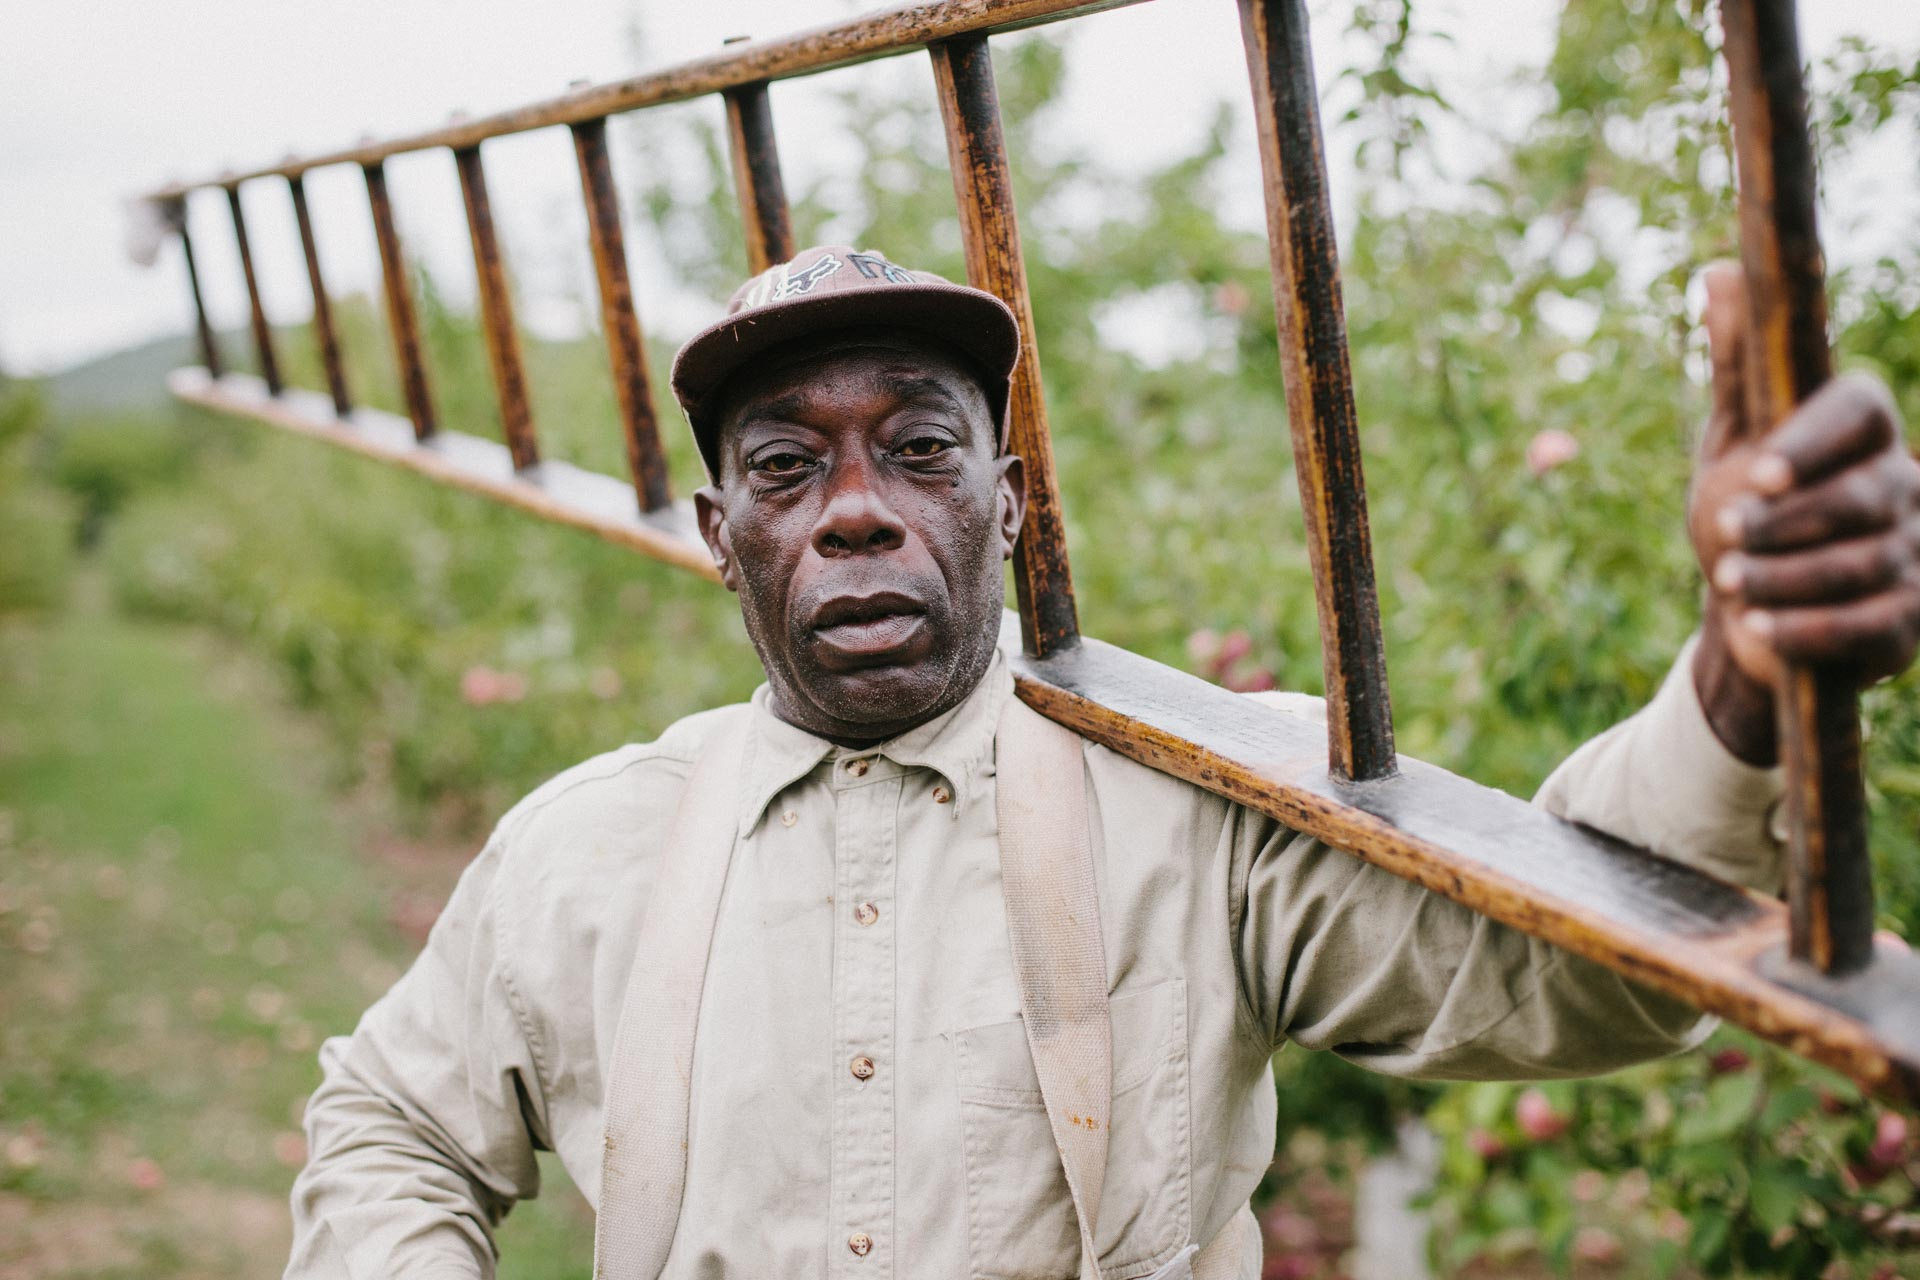 Portrait of farmworker on apple orchard by Boston Photographer Adam DeTour